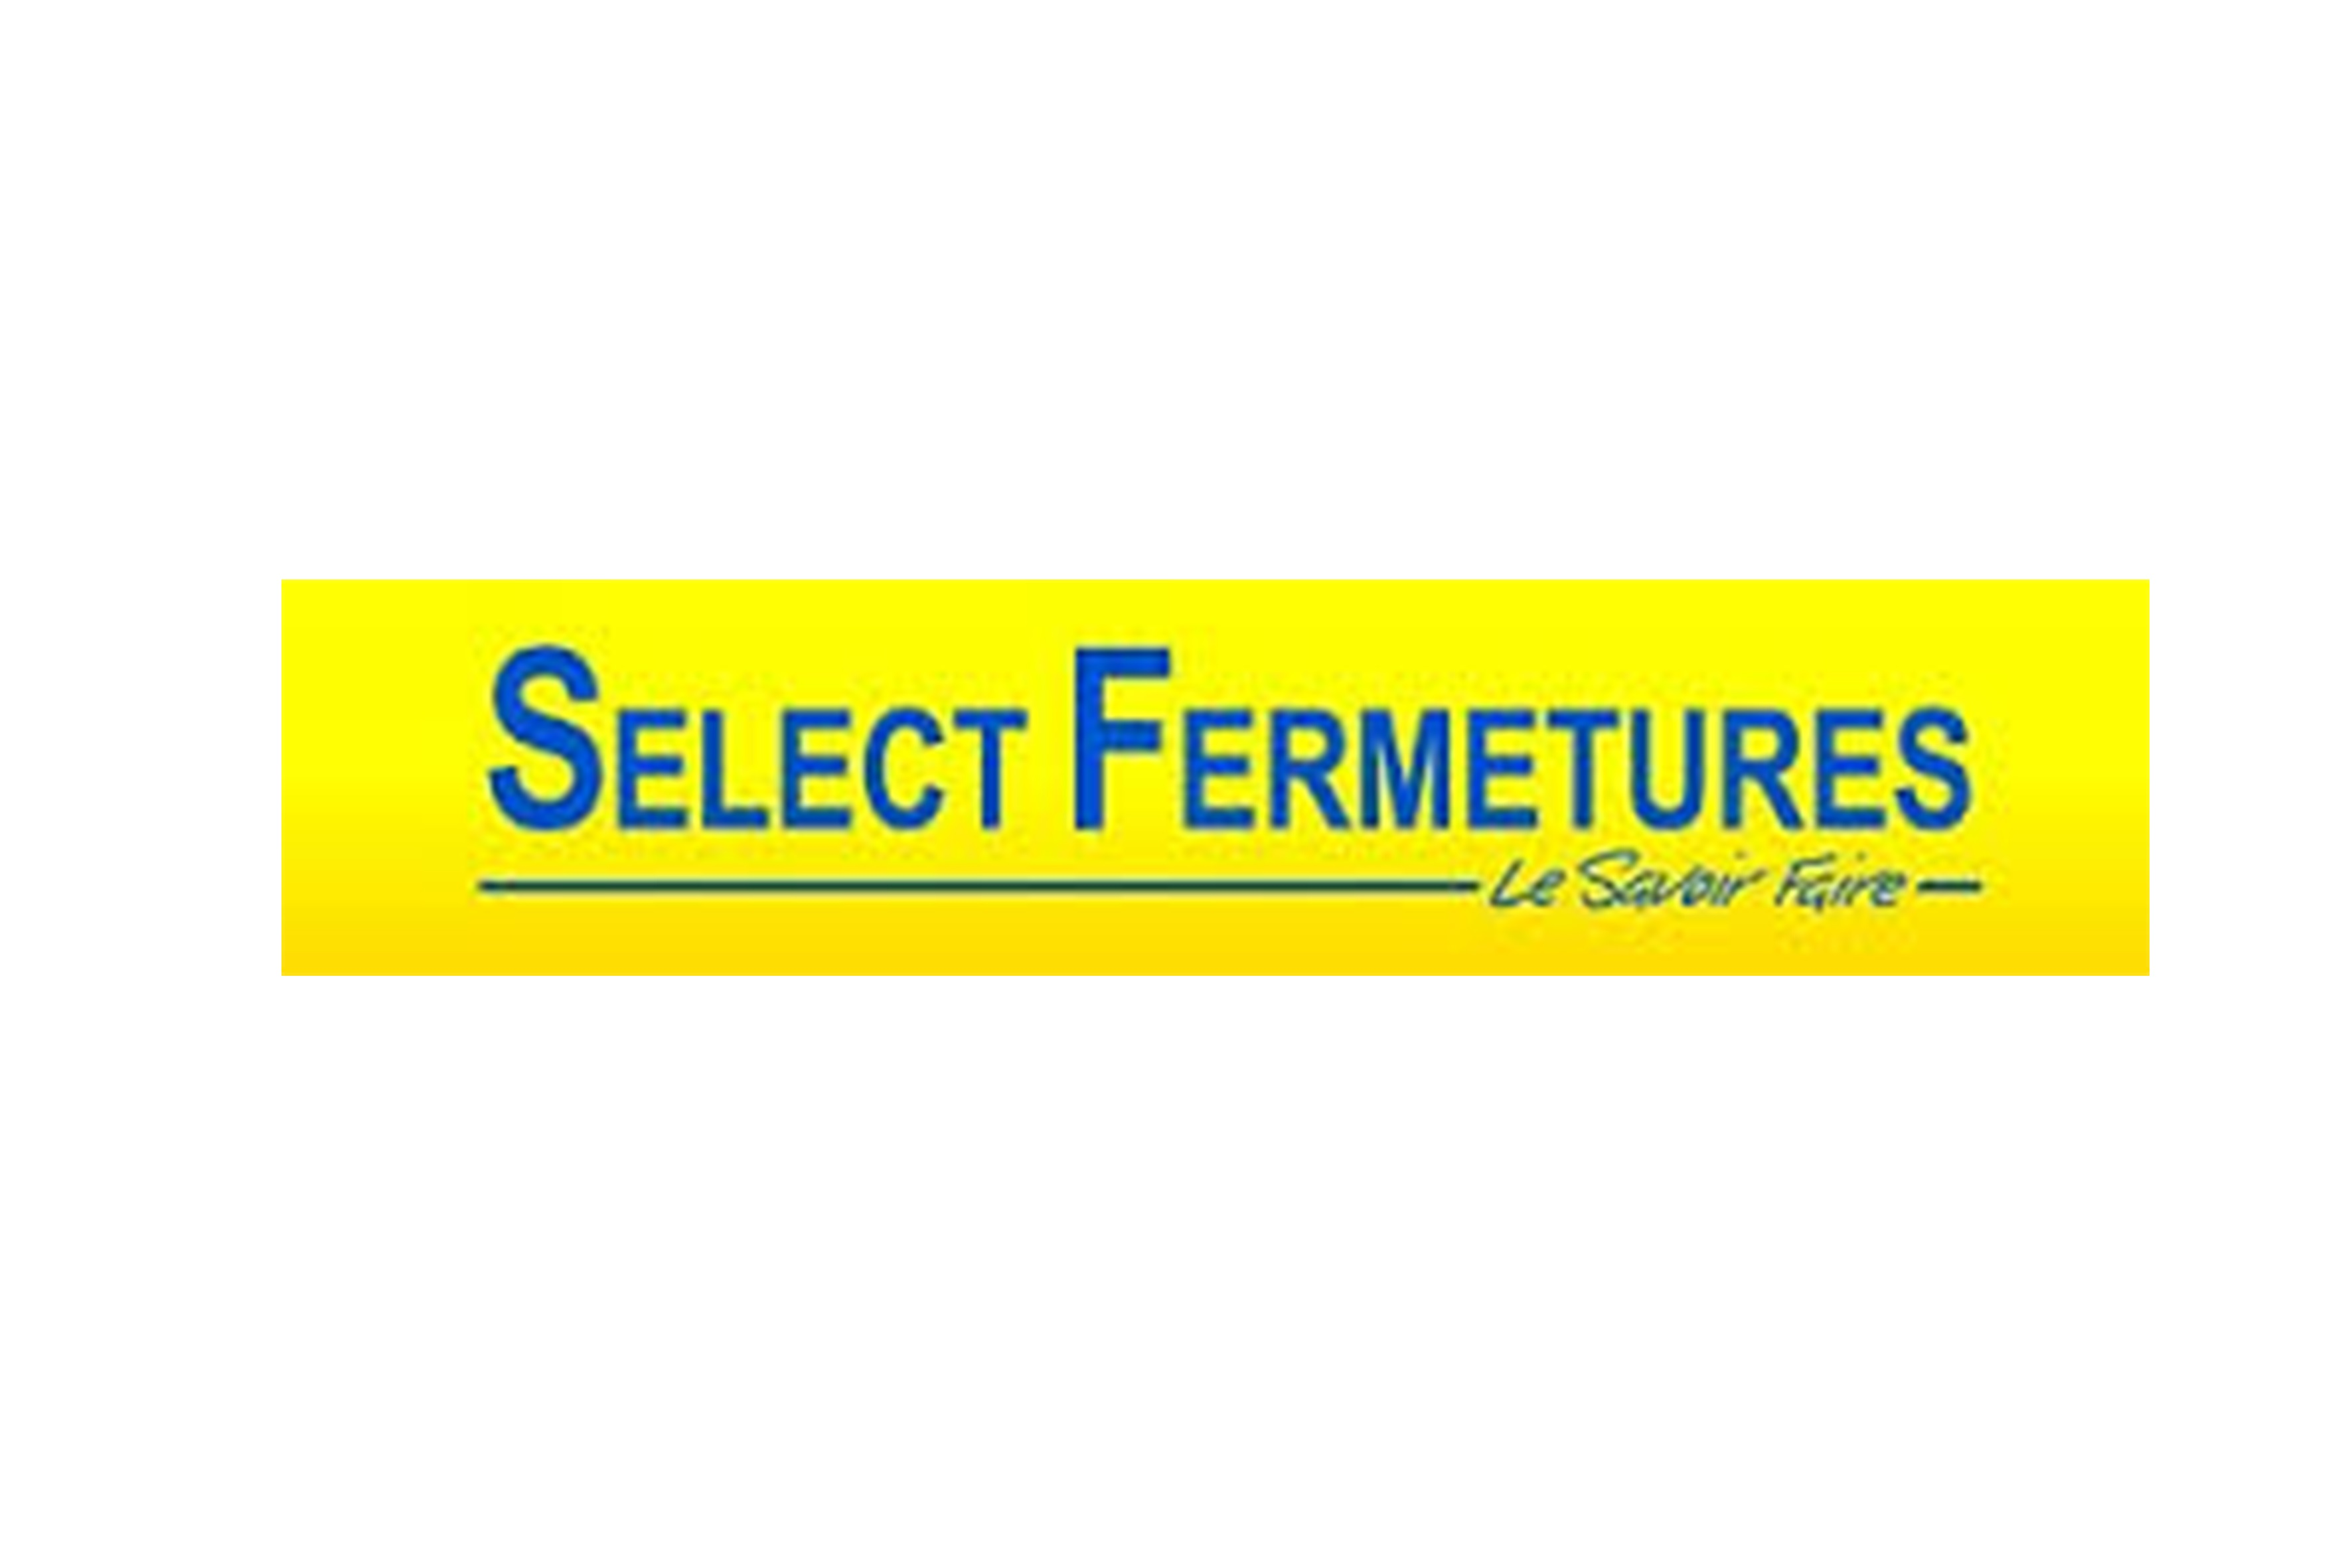 Select Fermetures